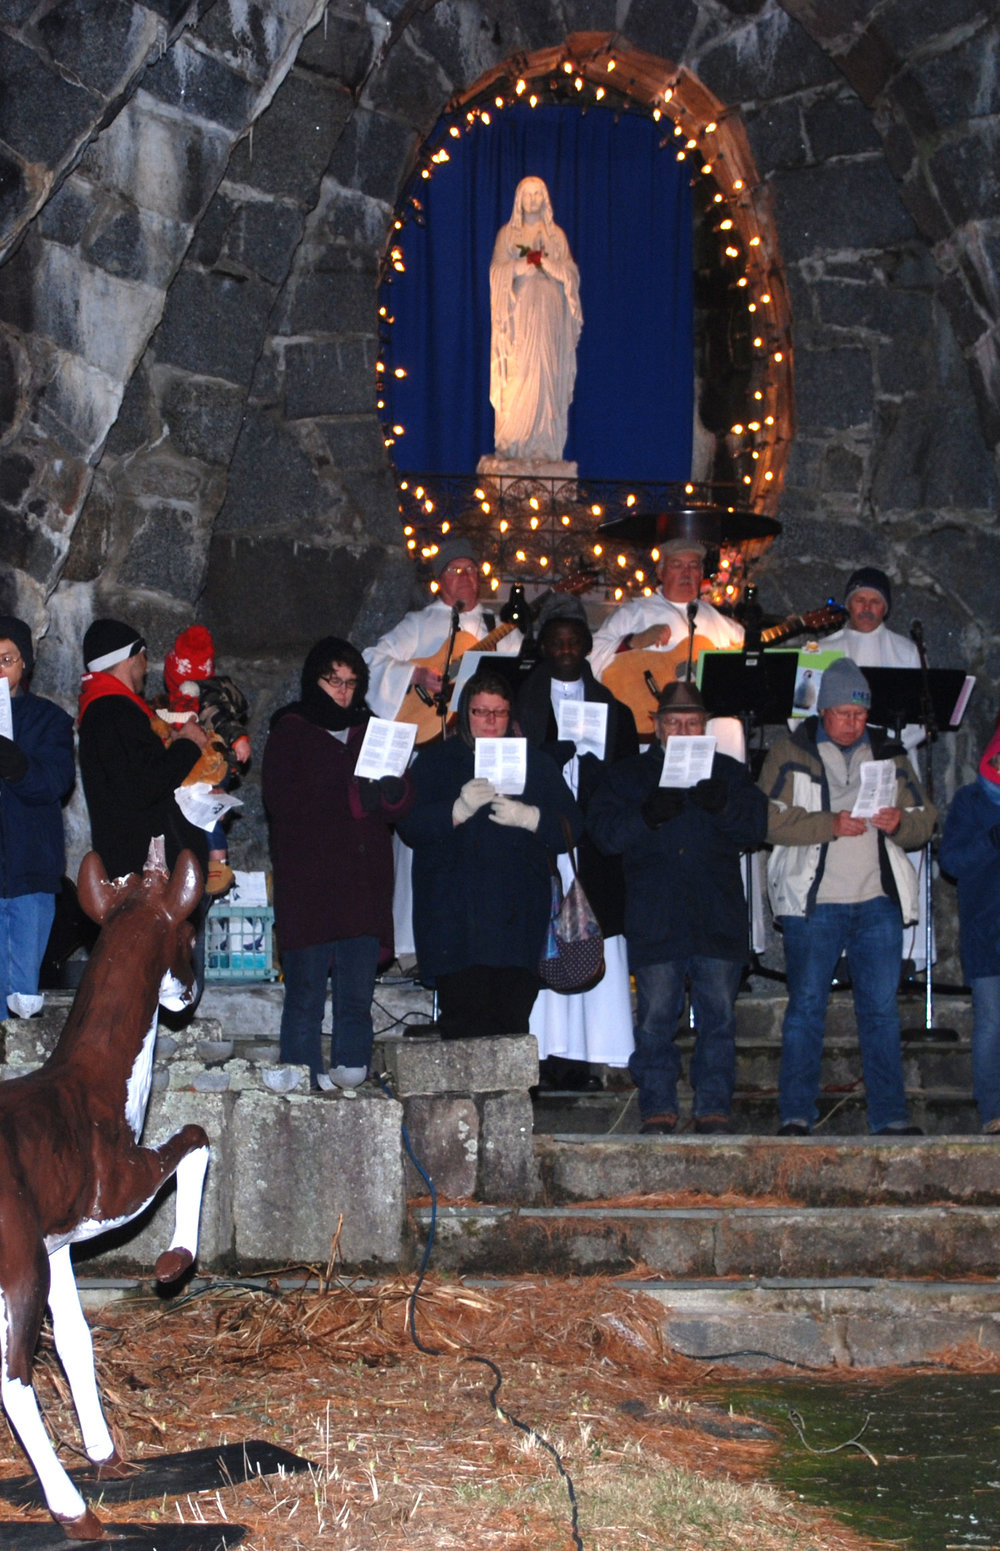 CHRISTMAS PRELUDE – CANDLELIGHT CAROLING - Saturday, December 1, 2018, 6:30 pmLocation is St. Anthony's Franciscan Monastery outside in front of the grotto at 26 Beach Ave, Kennebunk ME 04064, 207-967-4865Join the Franciscan Friars for an evening of Christmas songs by candlelight. Christmas Prelude starts Thursday November 29th and ends Sunday December 9th. Be sure to stay at the Franciscan Guest House during Prelude. Contact the hotel for reservation prices and details. For more information about Christmas Prelude, click here.Dinner is available for $29 plus tax at the Franciscan Guest House from 6:30 to 8:15 pm in the hotel dining room. Please call the Franciscan Guest House at 207-967-4865 to make reservations. Seating is limited. See the Menu here.Prelude Access: For Pedestrian Safety on Saturday December 1st, cars will not be allowed to into the front gate from 5 pm until 8 pm. We recommend coming early or walking to the Christmas Caroling at the Franciscan Monastery event.